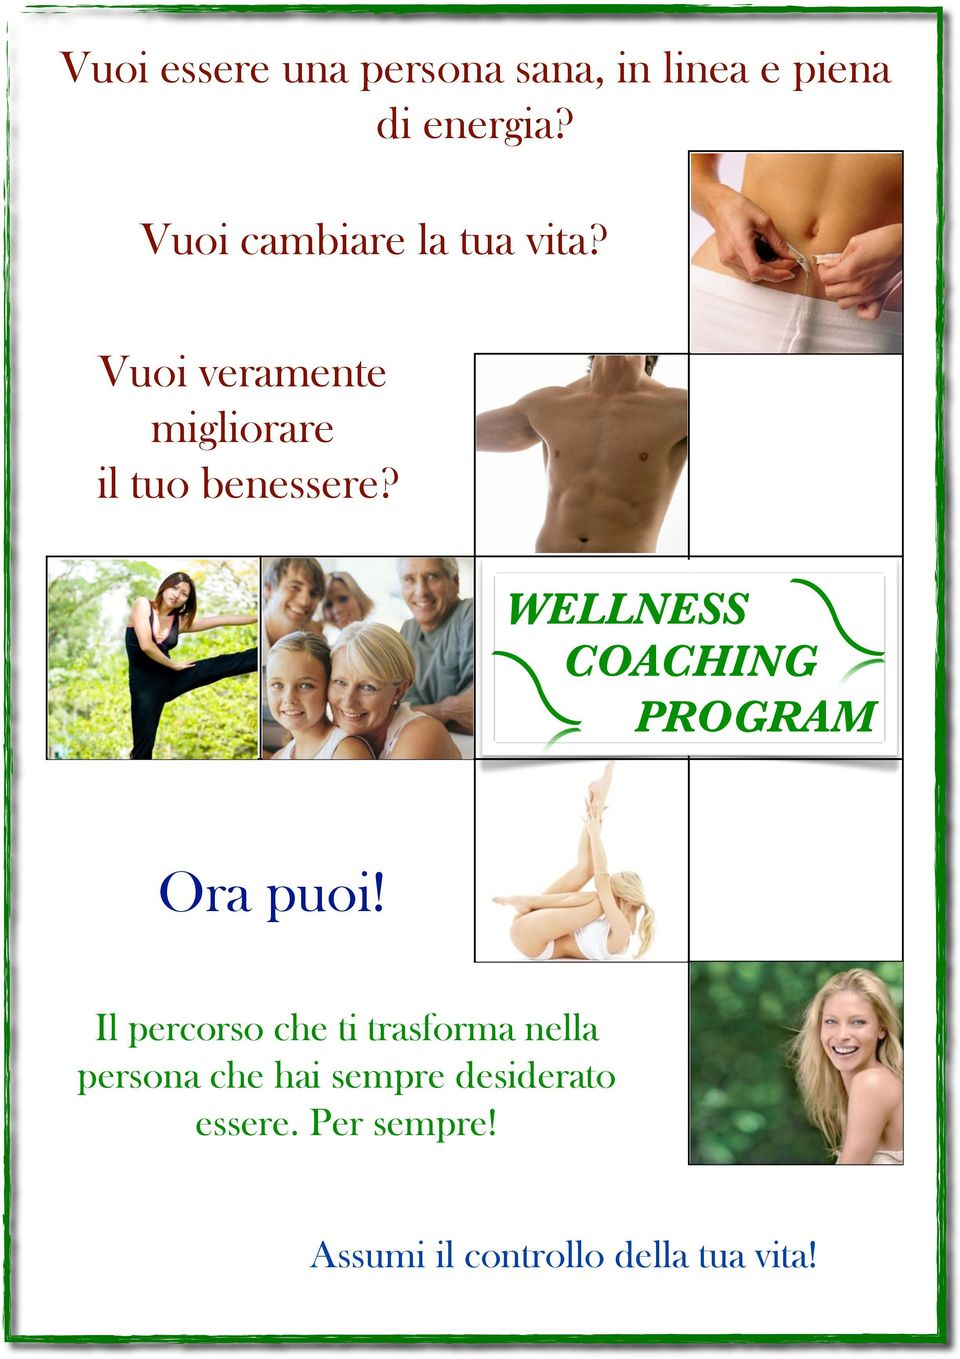 WELLNESS COACHING PROGRAM Ora puoi!